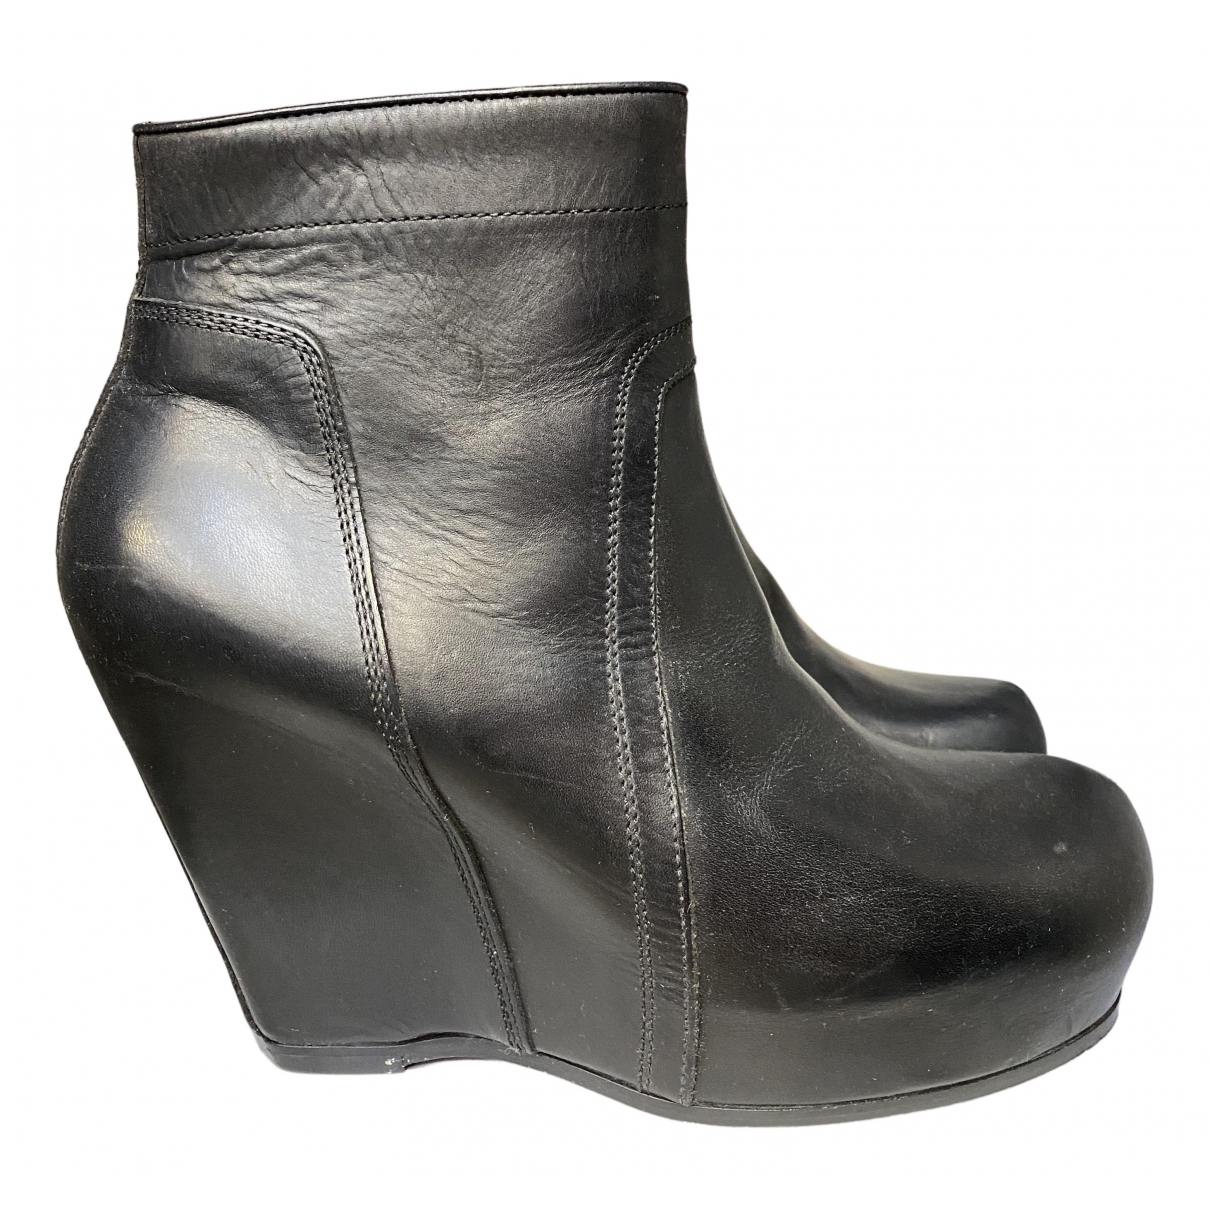 Rick Owens N Black Leather Ankle boots for Women 40 EU